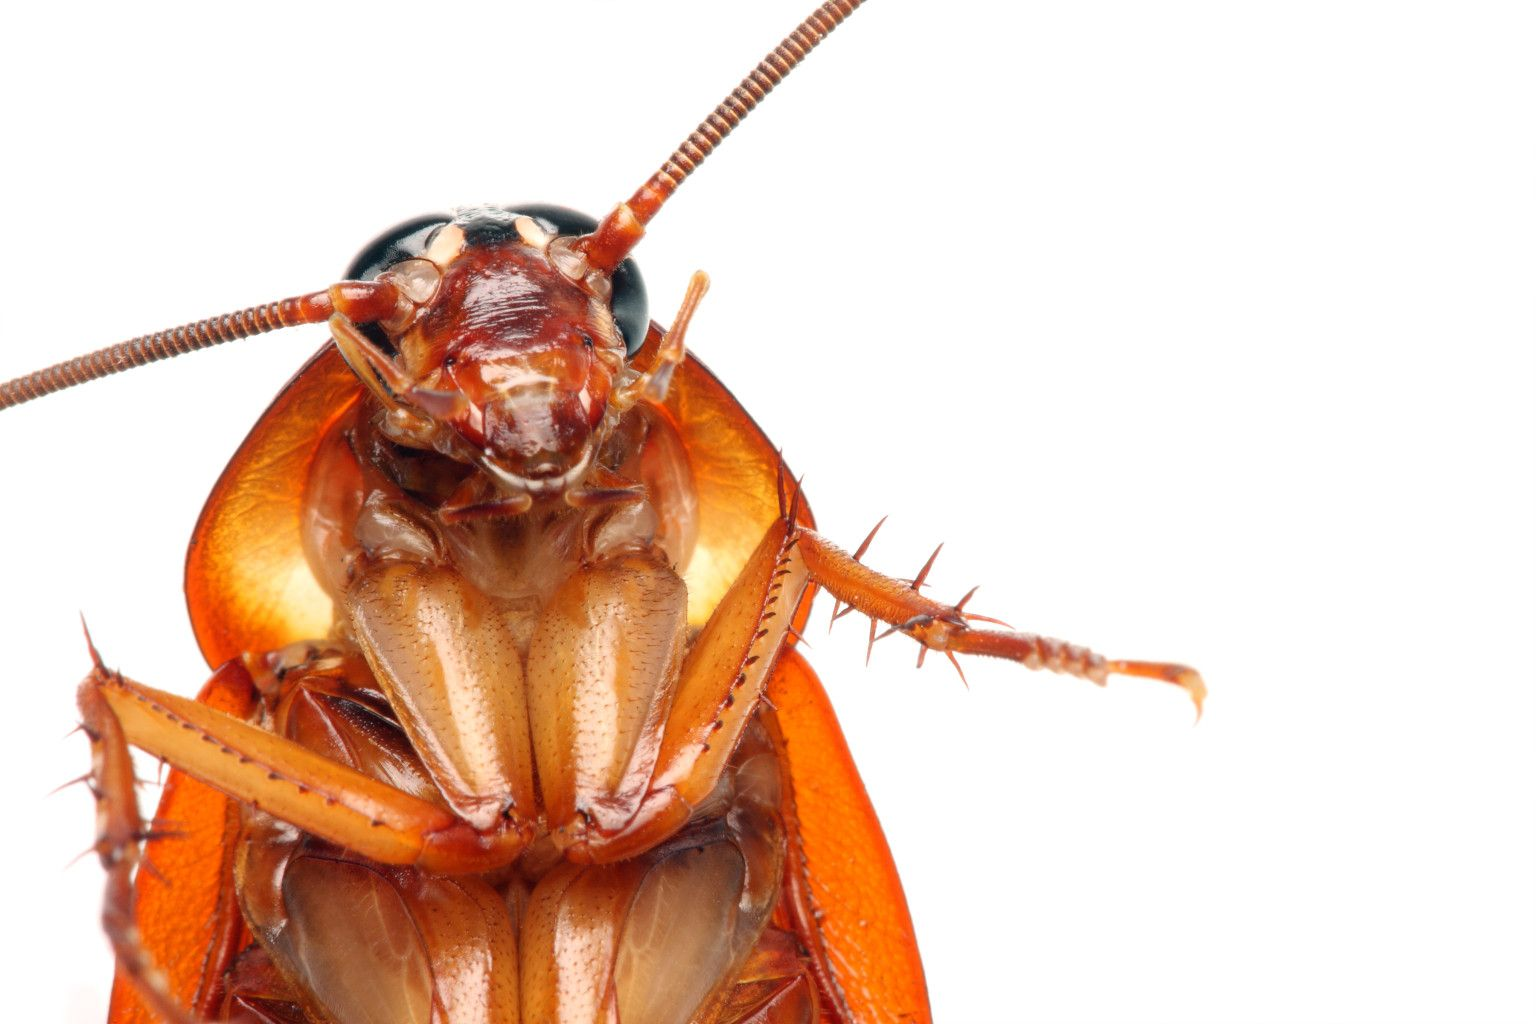 One Million Cockroaches On The Loose Cockroaches Insects Bugs And Insects